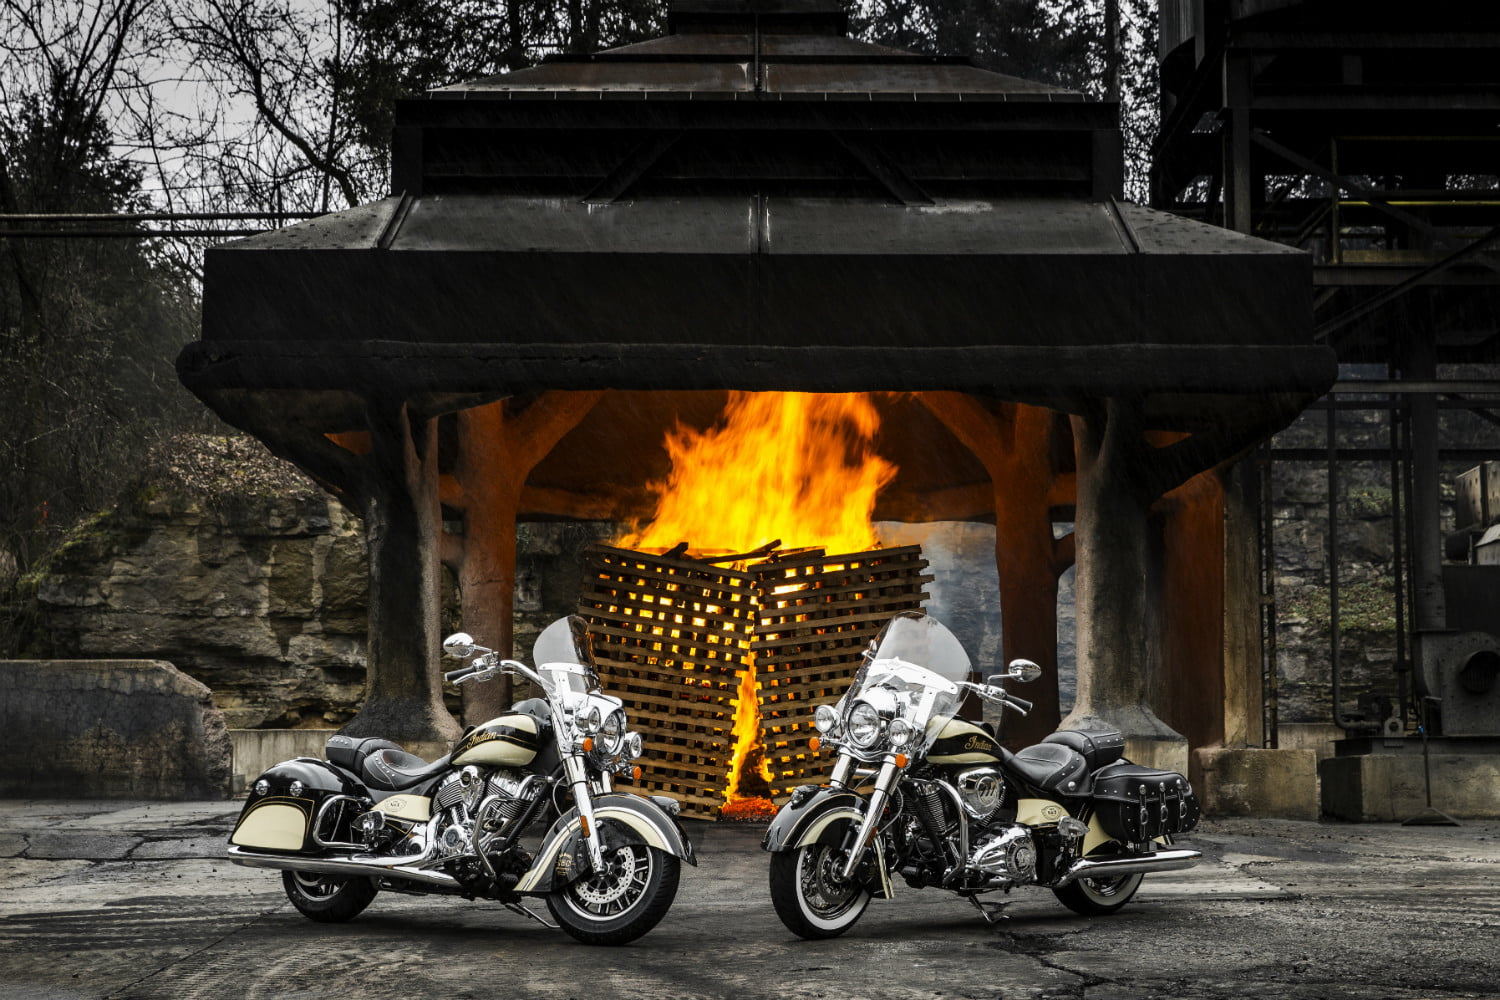 Indian Motorcycle Chief Vintage and Springfield Jack Daniel's